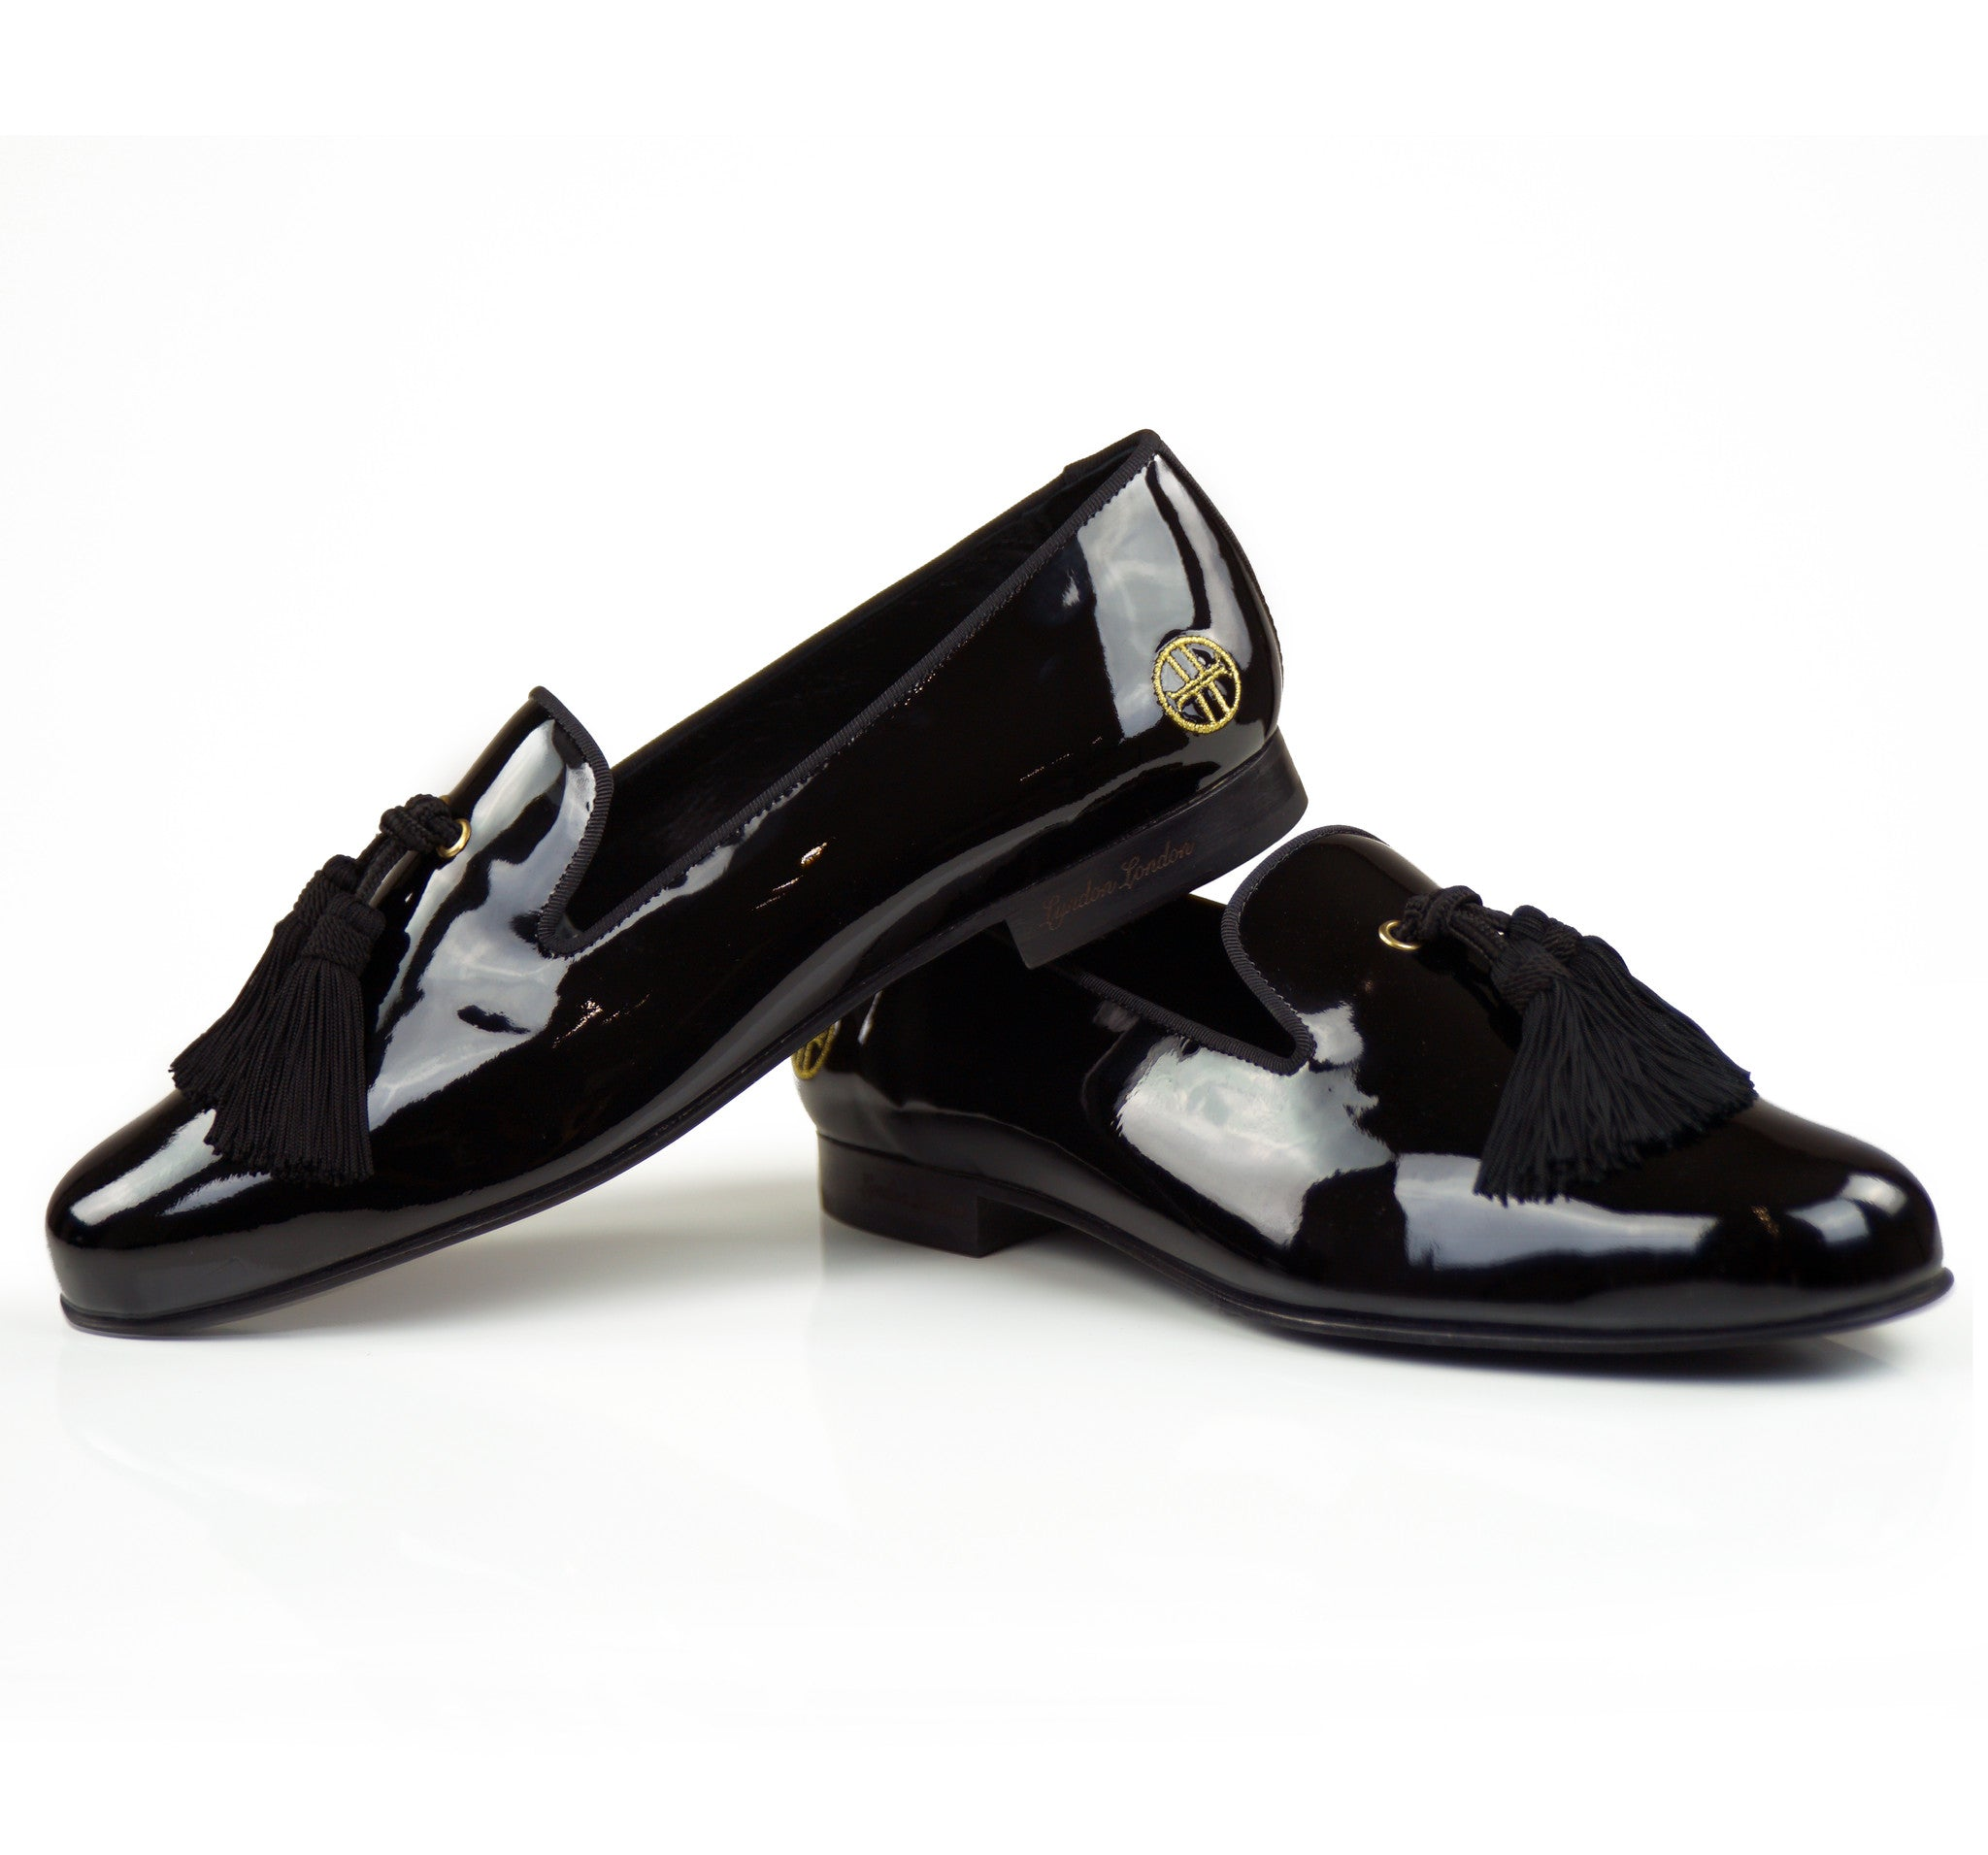 OLIVER BROOKS PATENT BLACK